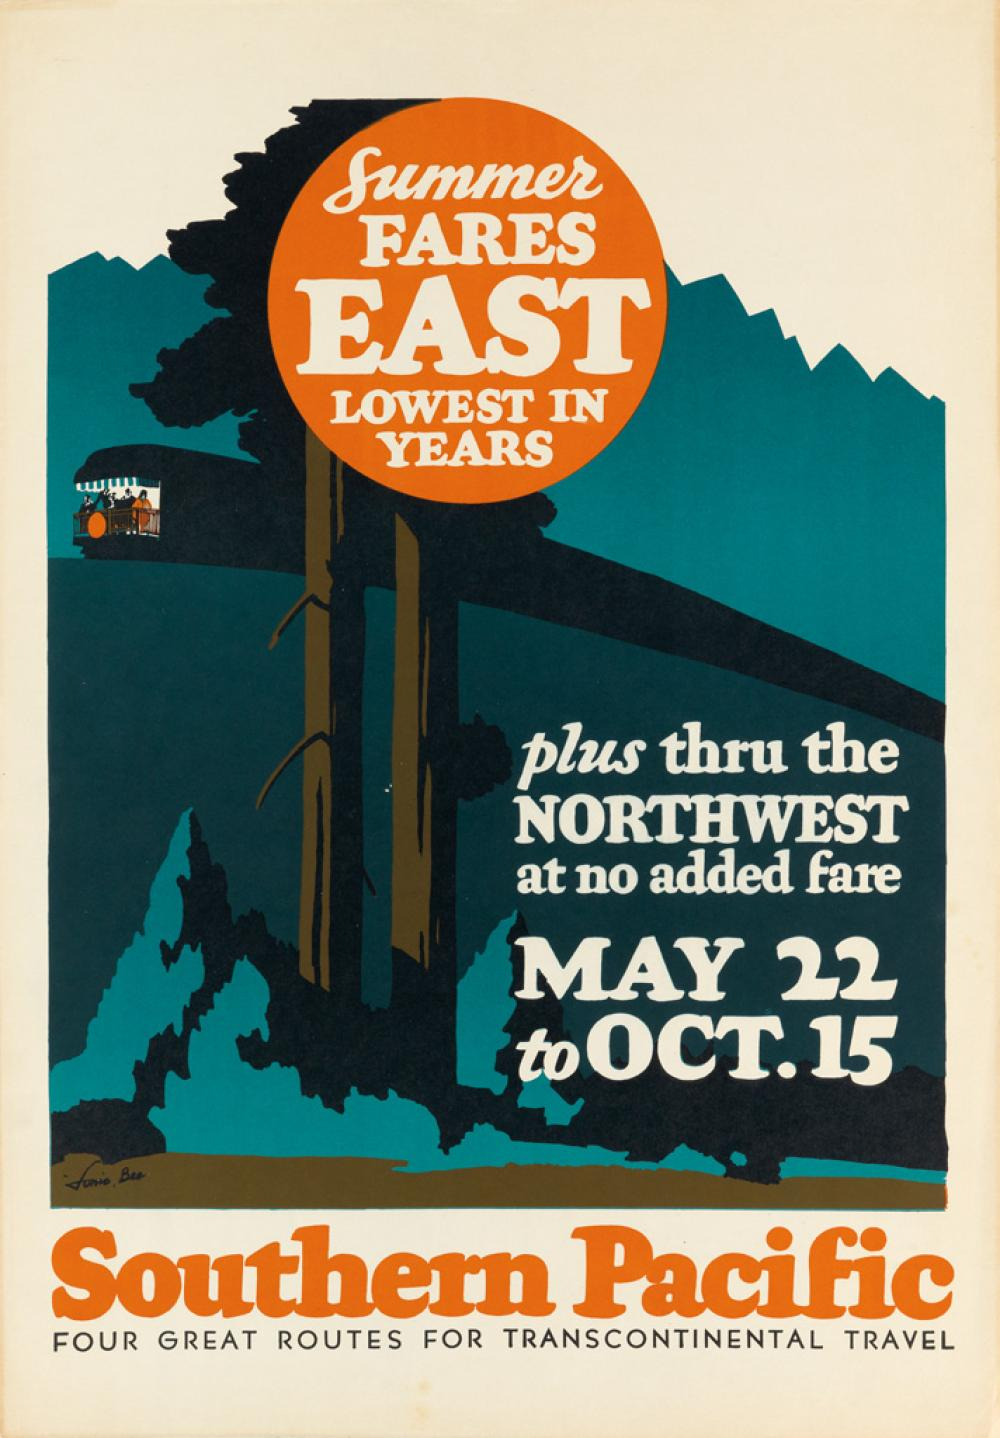 LONIE BEE (1902-1995). SOUTHERN PACIFIC / SUMMER FARES EAST. Circa 1936. 22x16 inches, 57x40 cm.